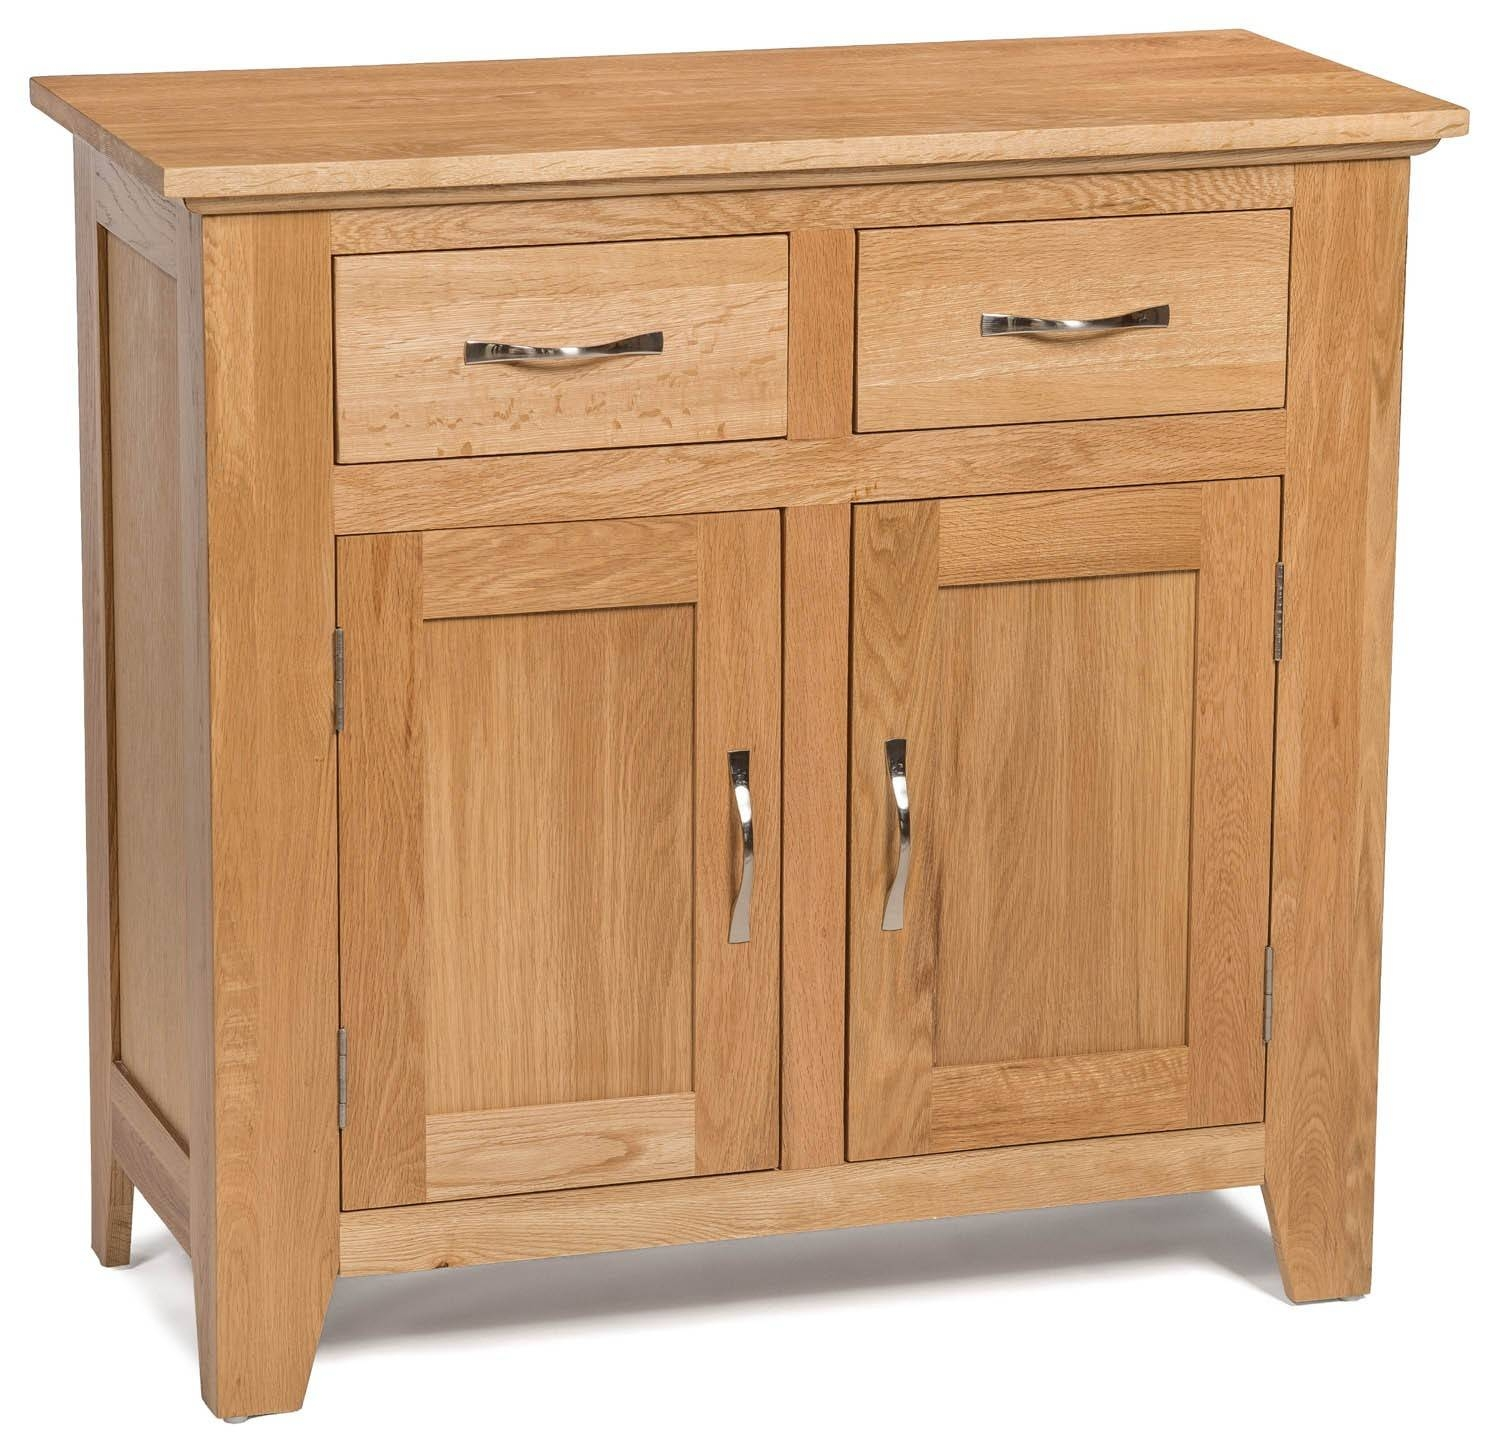 Camberley Oak Small 2 Door 2 Drawer Sideboard – Sideboards & Tops Throughout Sideboards With Drawers (View 4 of 15)